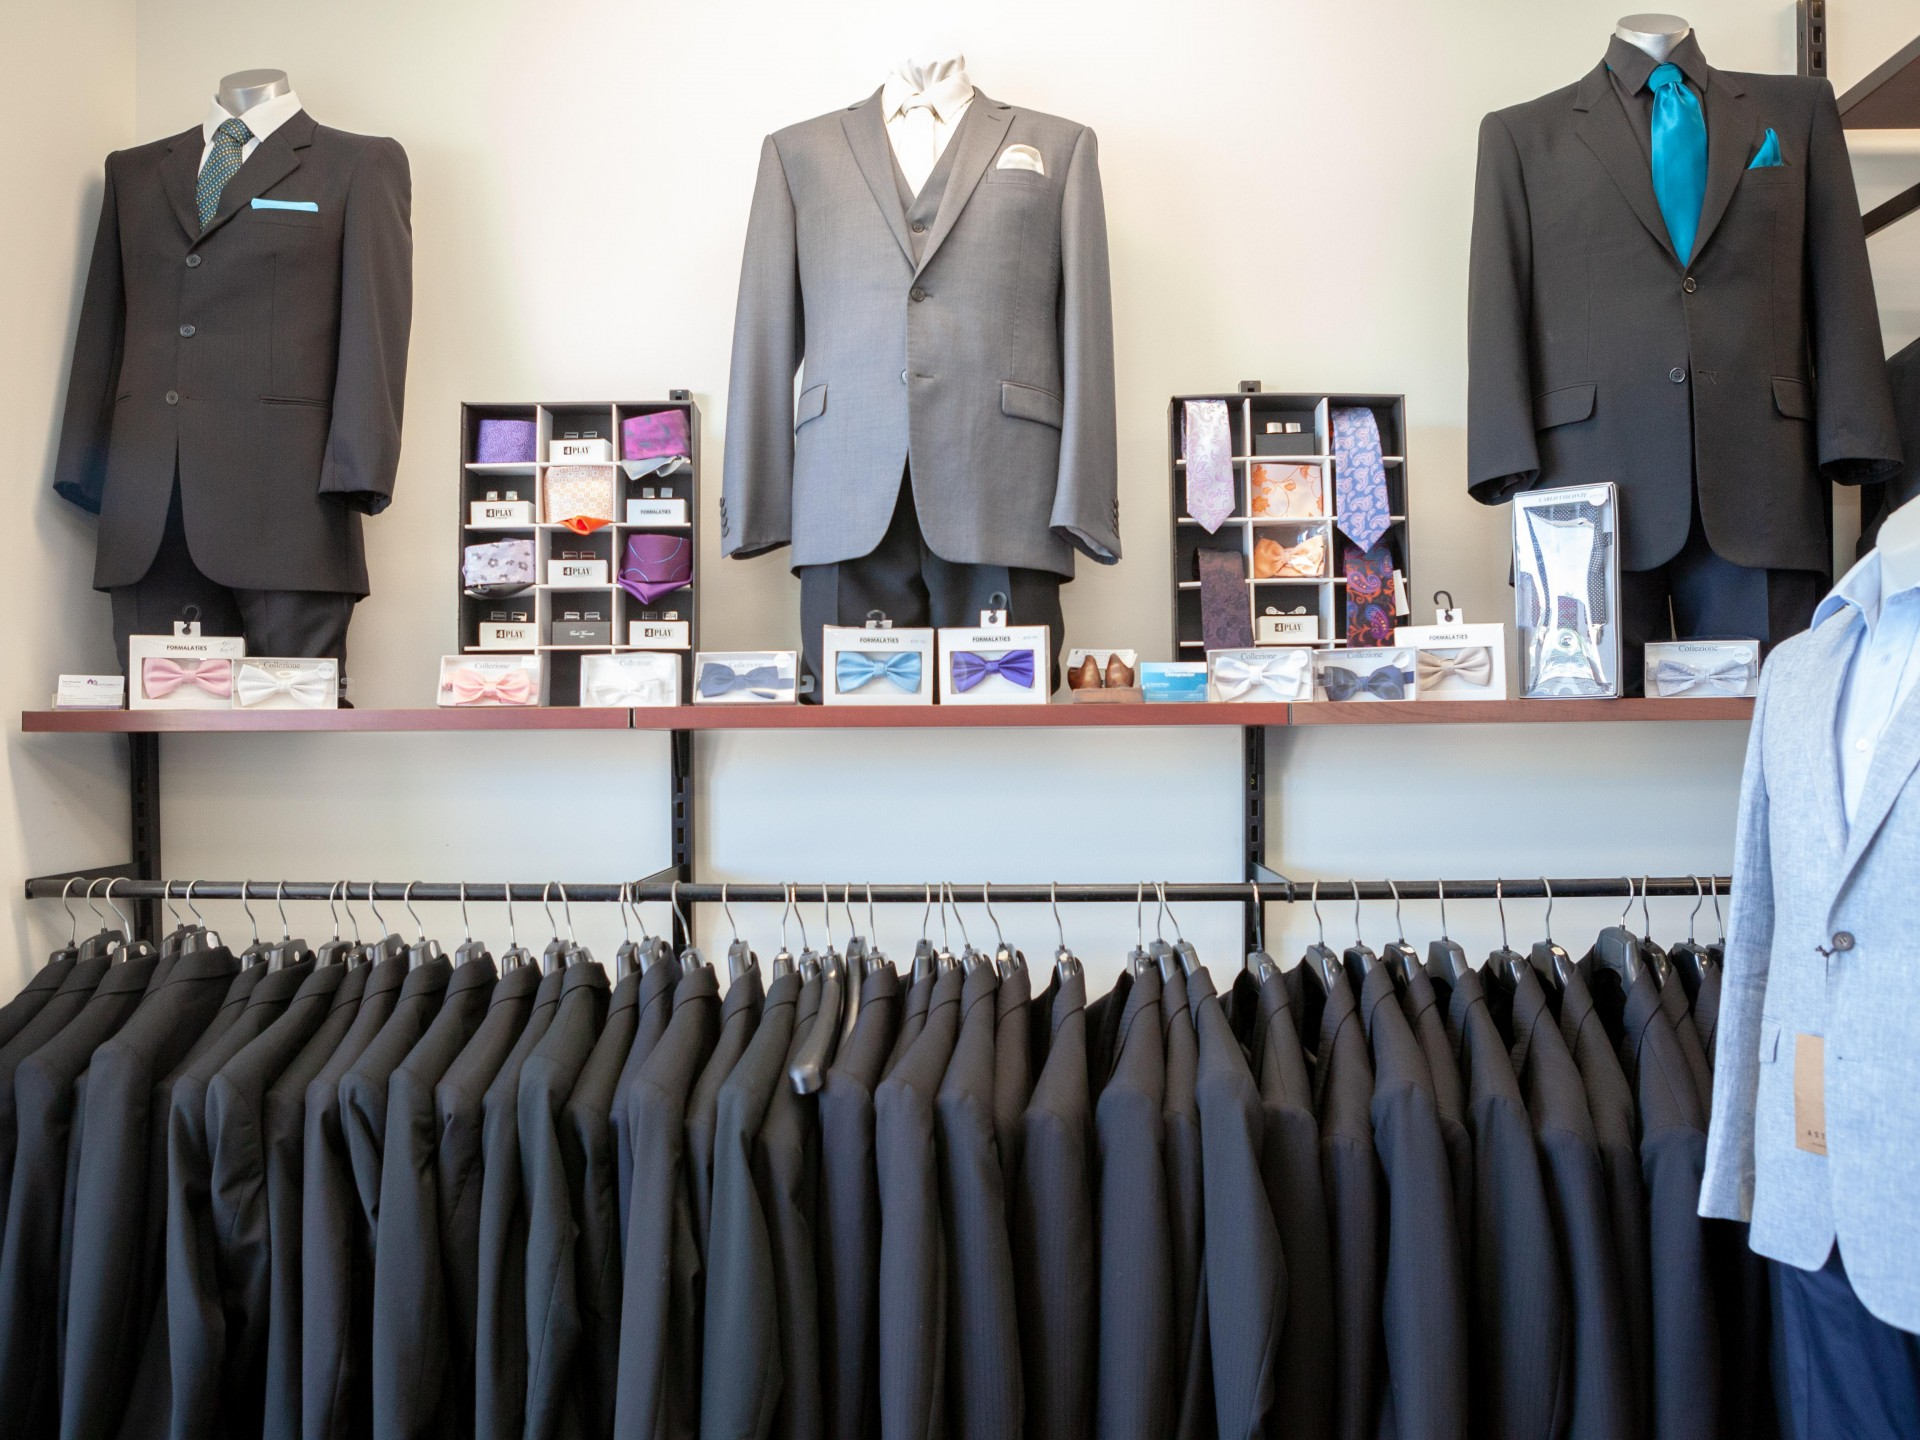 Suit Hire and Sales Business for Sale Mandurah Western Australia